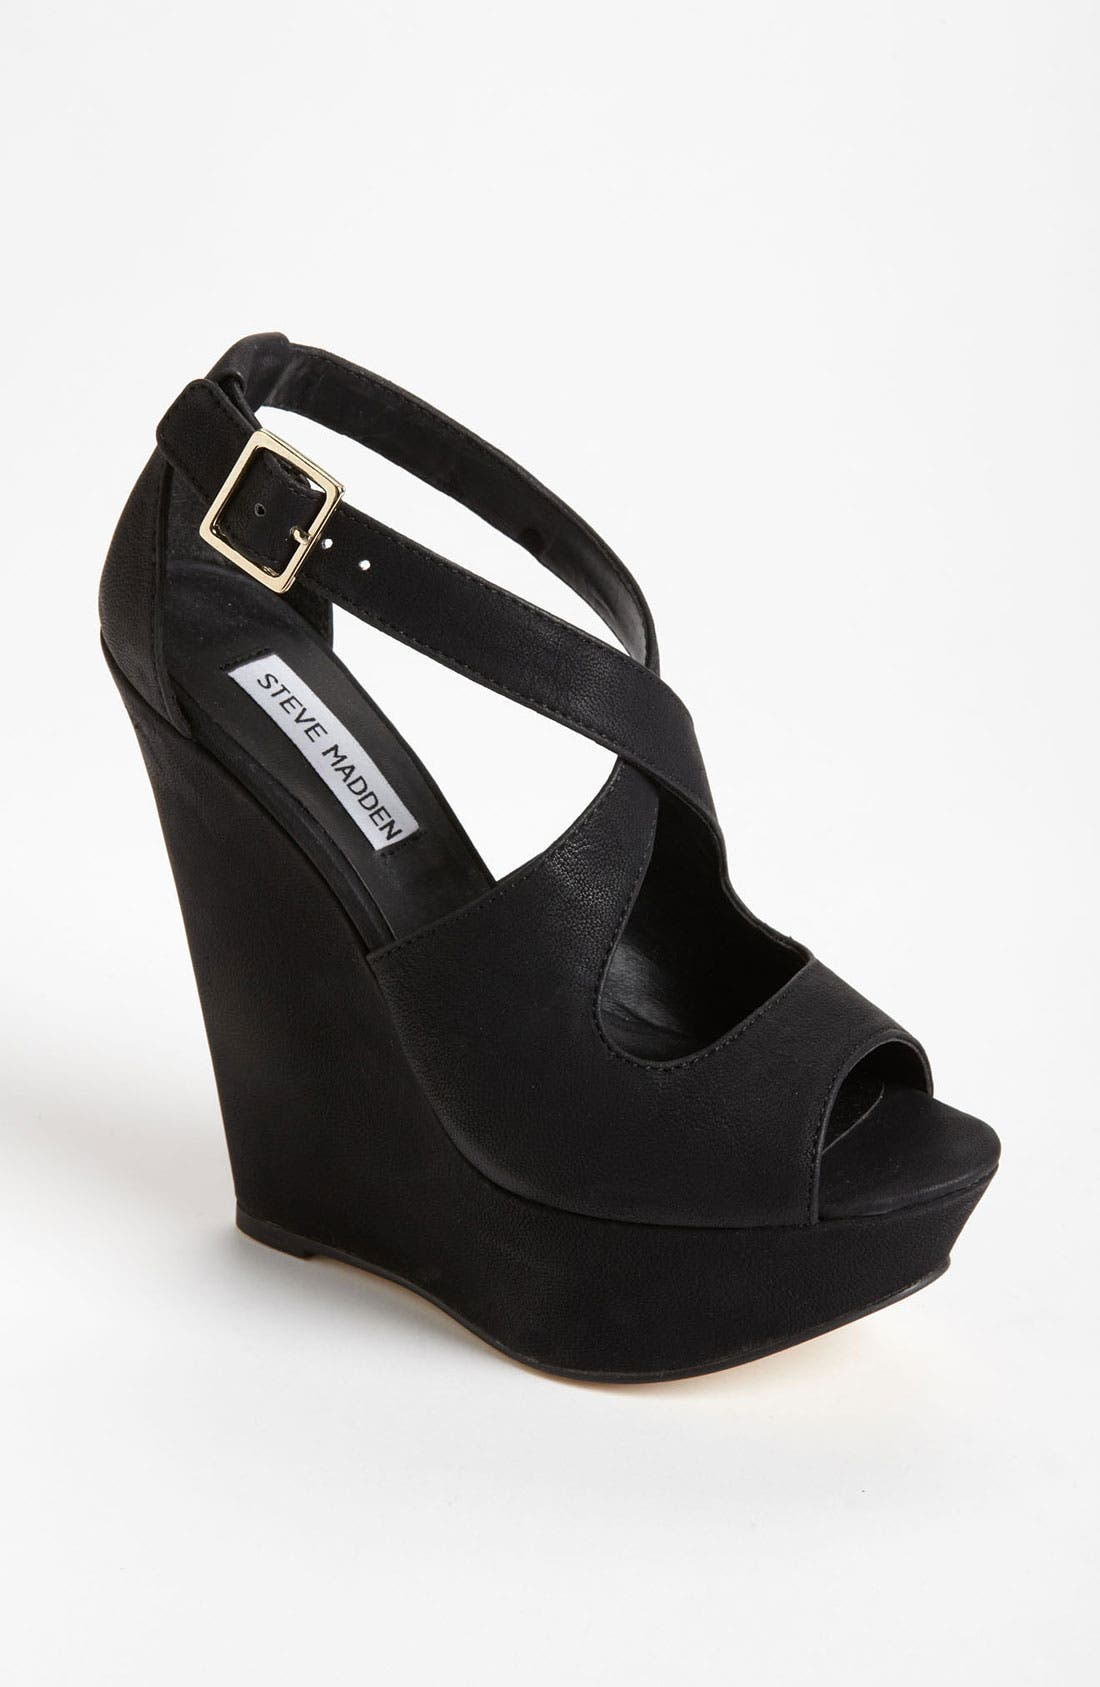 Main Image - Steve Madden 'Xternal' Wedge Sandal